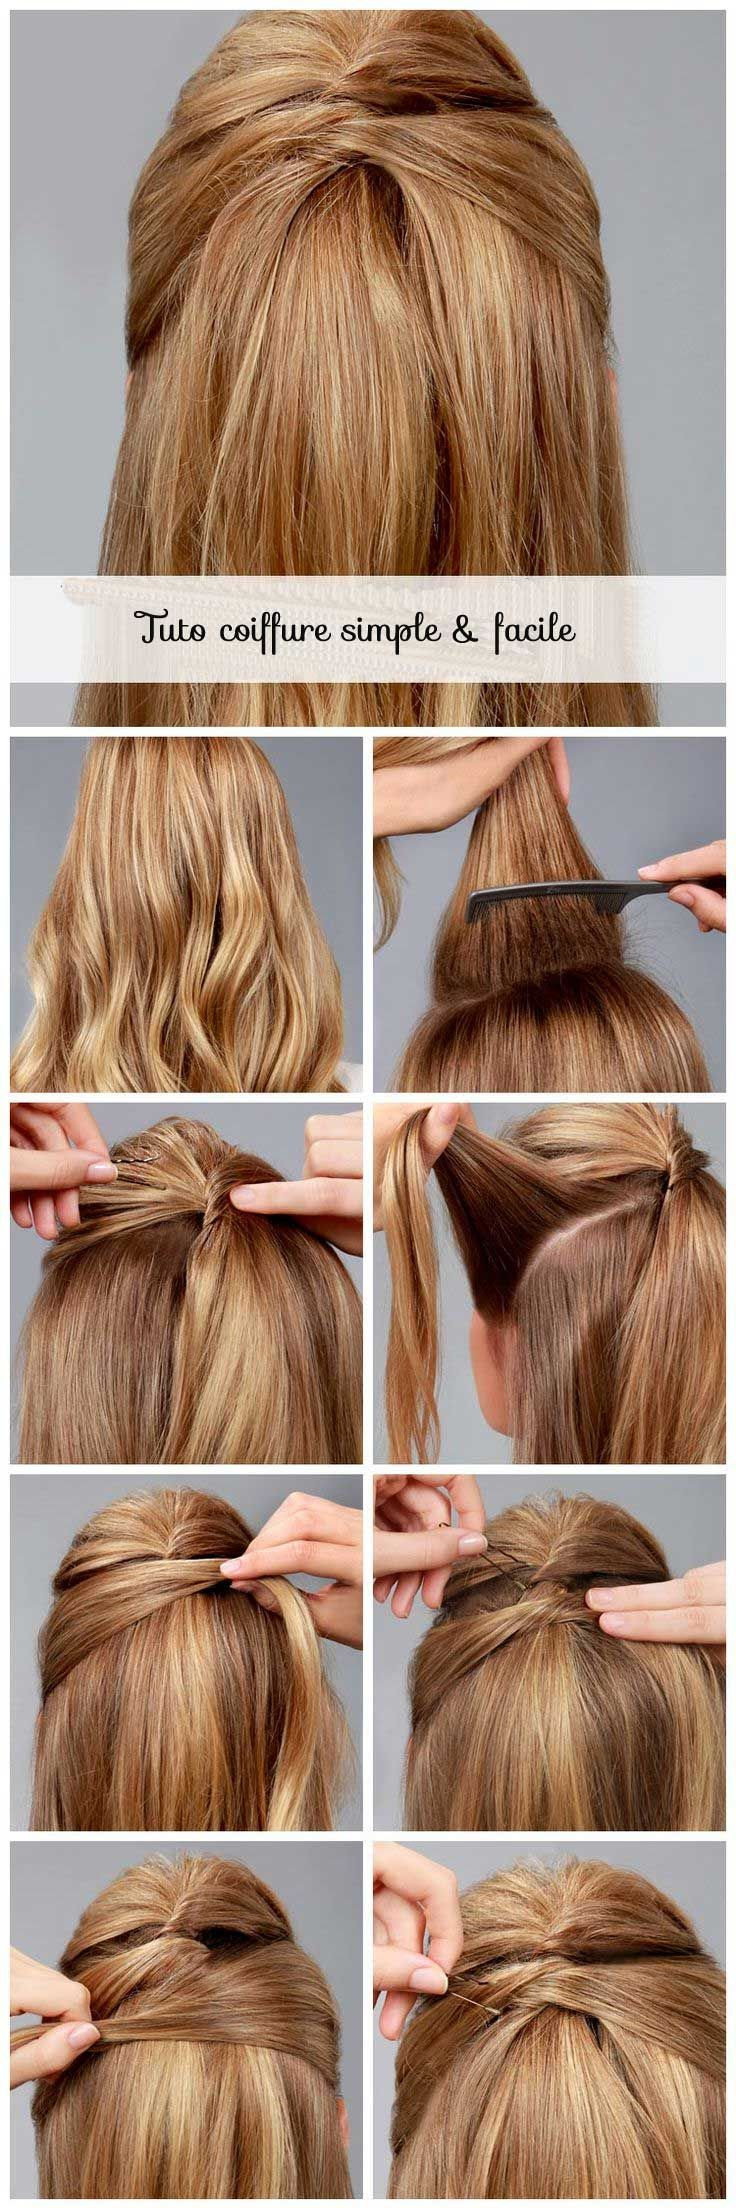 Favorit 310 best tuto de coiffure images on Pinterest | Hairstyles, Hair  PF53